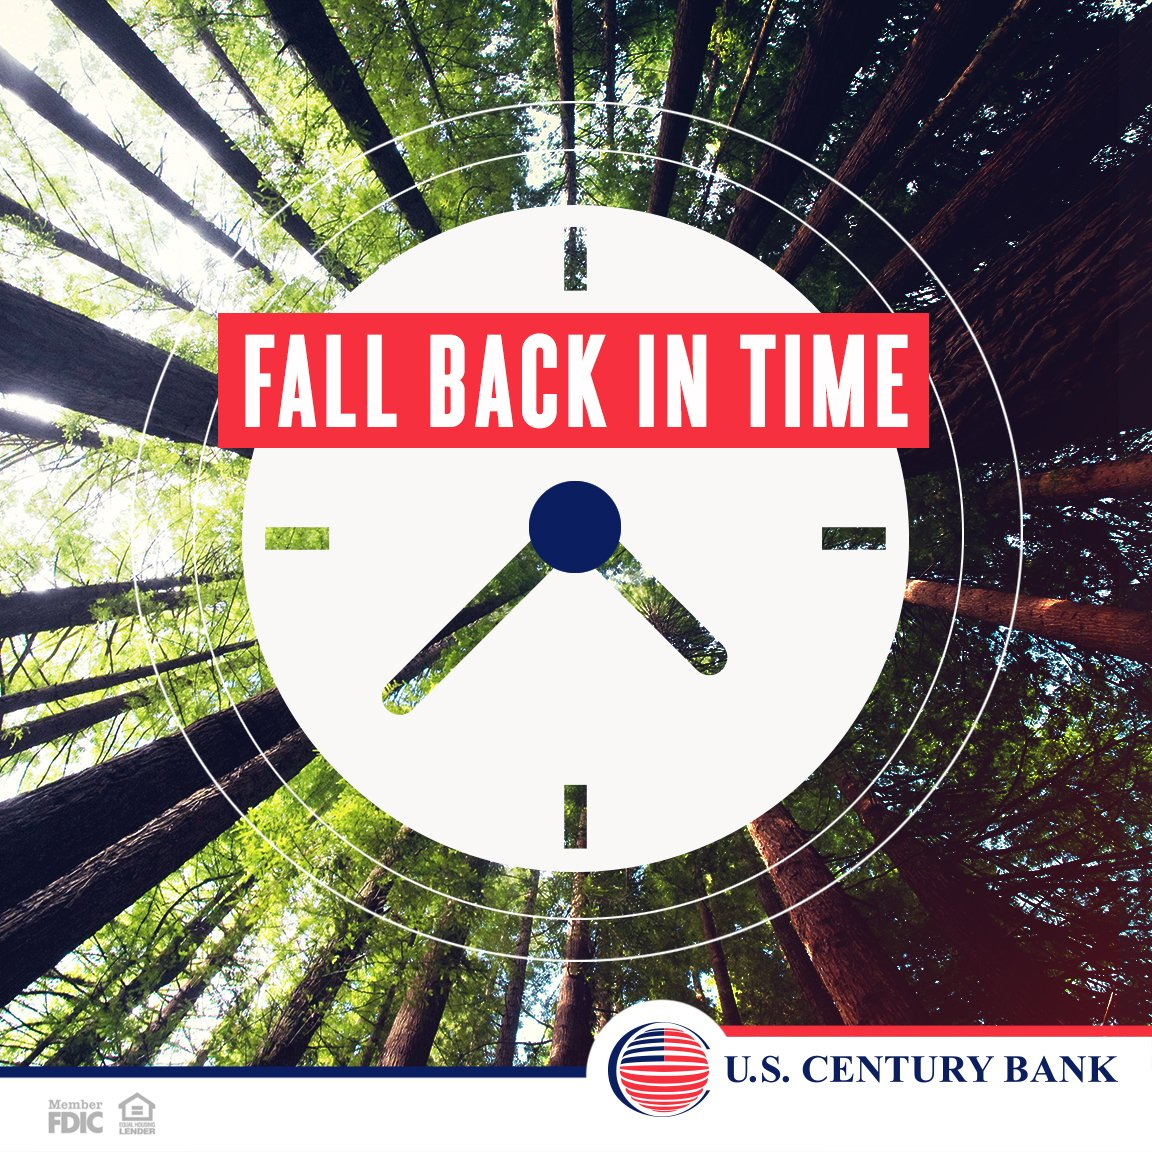 Times are changing, Daylight Savings is here!  Call or visit us at  |  305.715.5200 #daylightsavings #socialdistancing #bankwisely#uscb #southflorida #itsthepeoplethatmakeus #onlinebanking #bankfromhome #financialfreedom #stayconnected #november2020